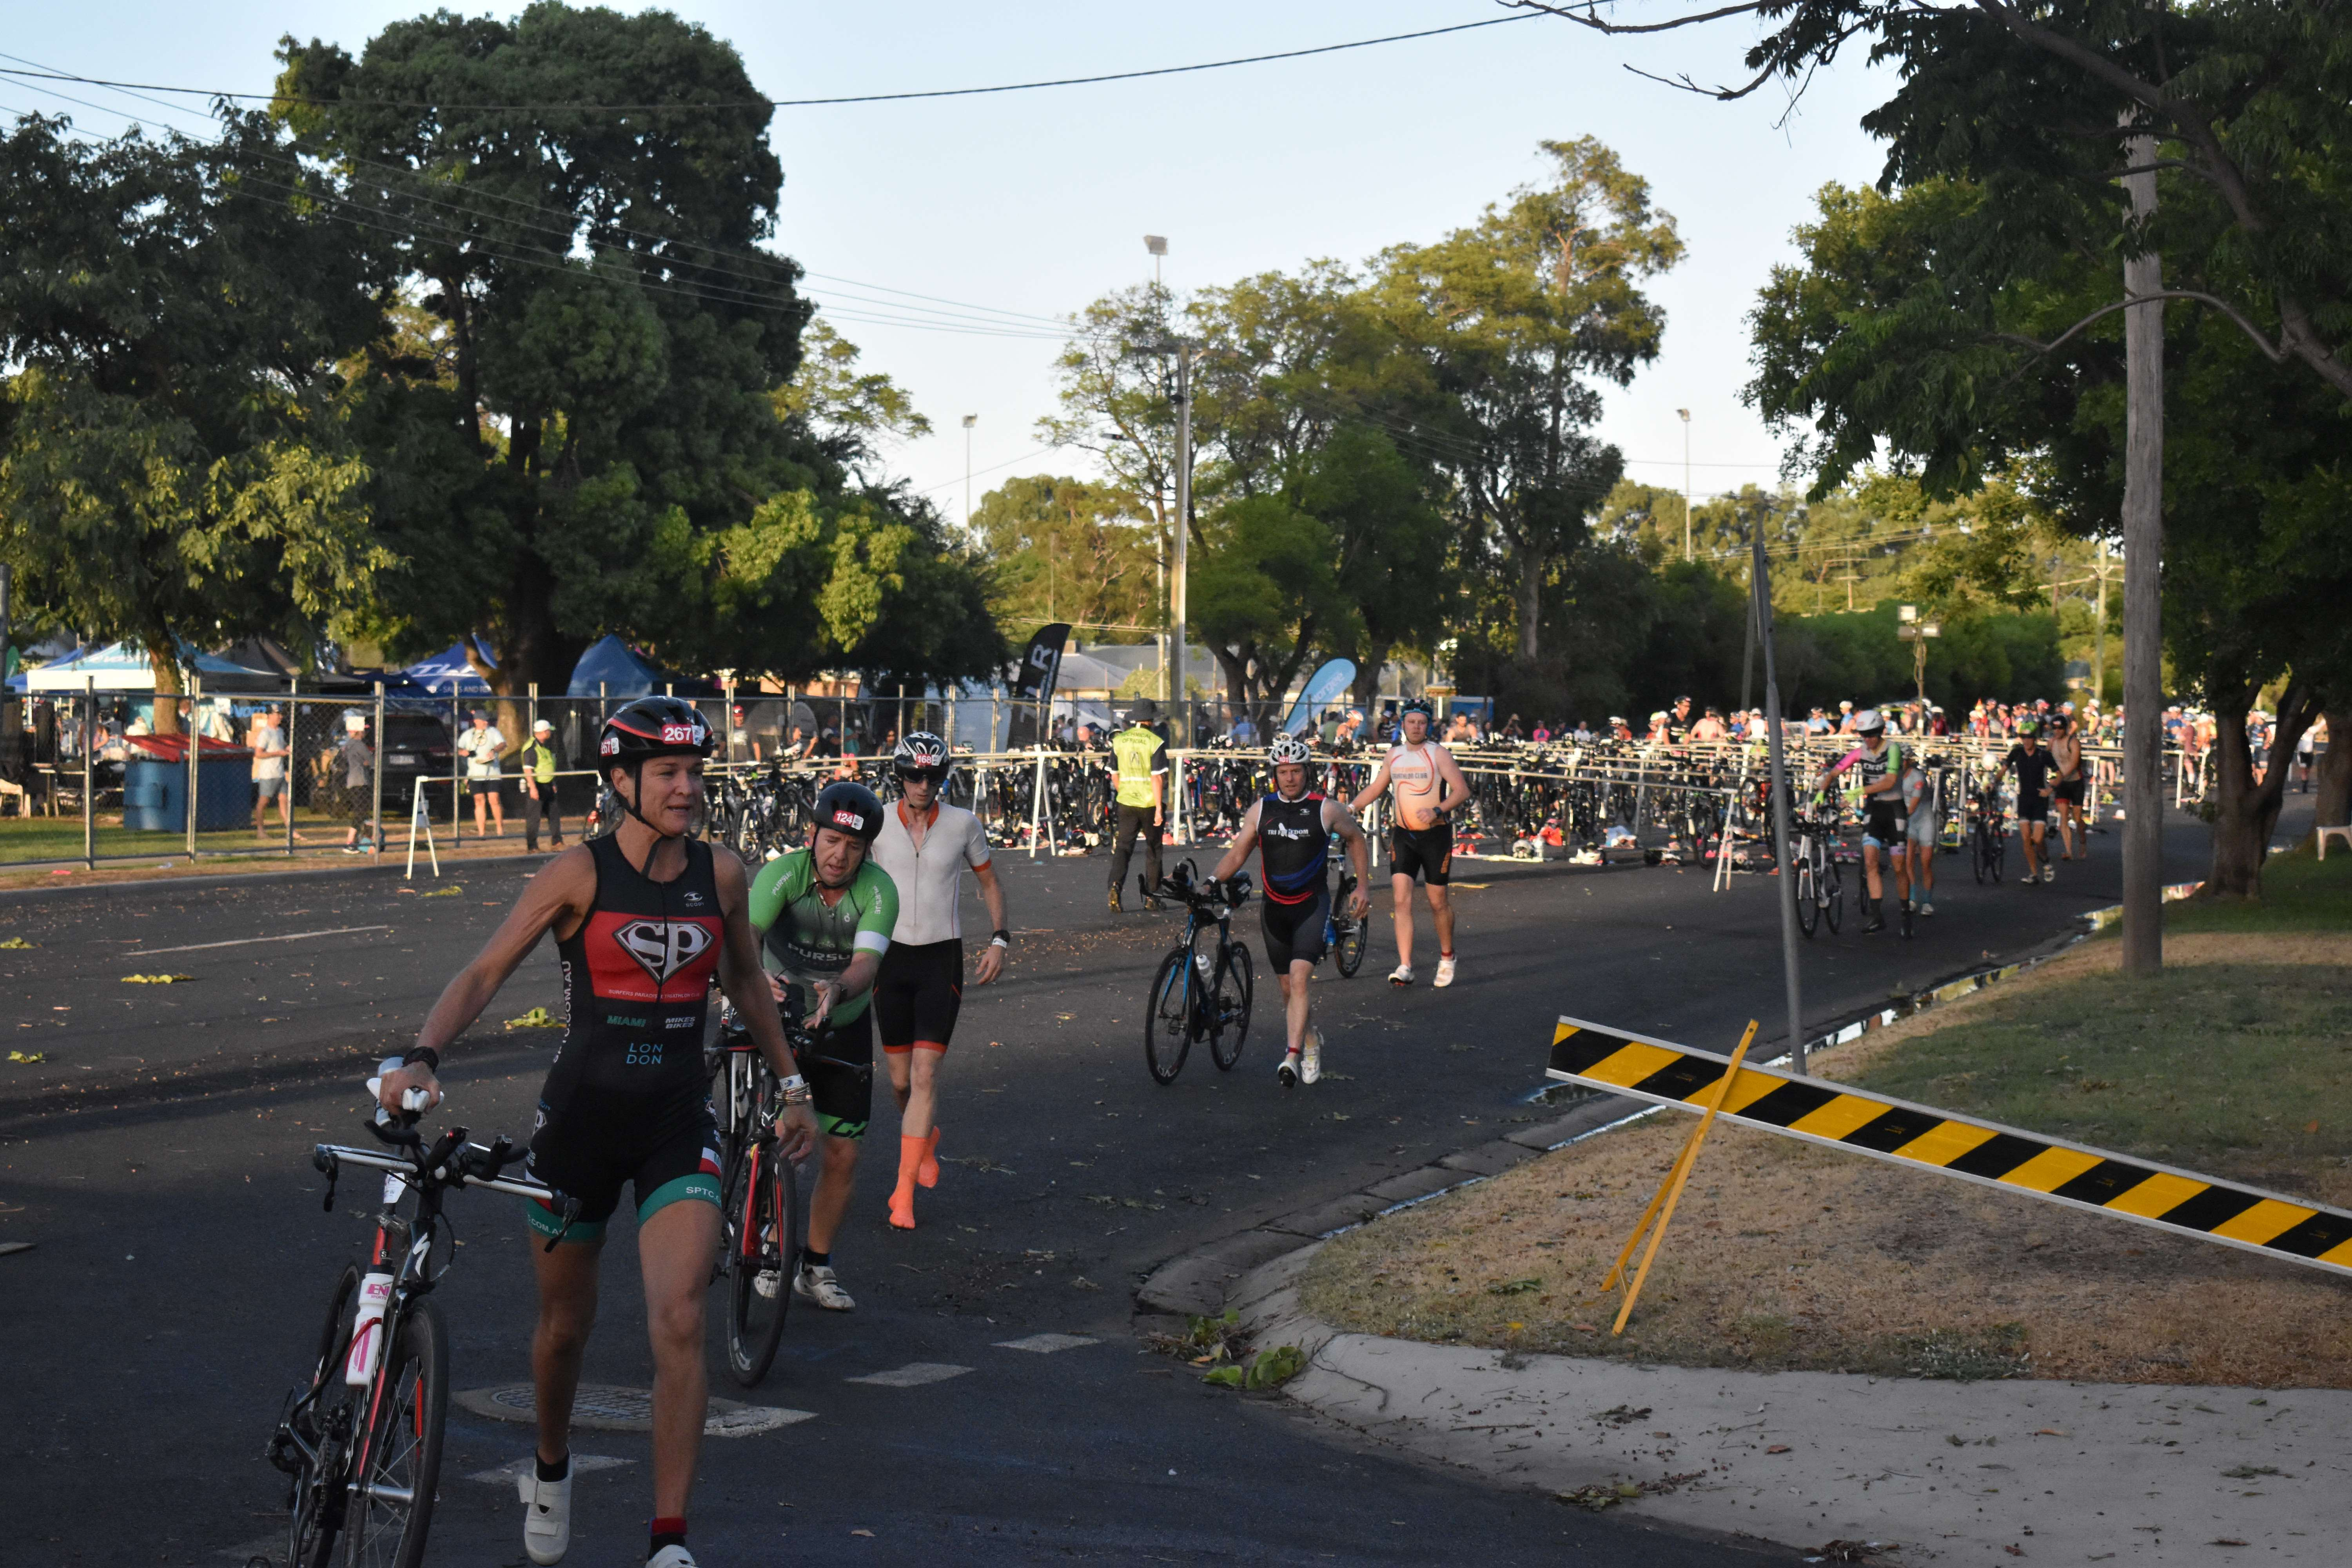 aa068ab5f38 The return of toughest Triathlon in Queensland saw over 250 athletes vying  for the Queensland Long Course State Championships and Nissan State ...